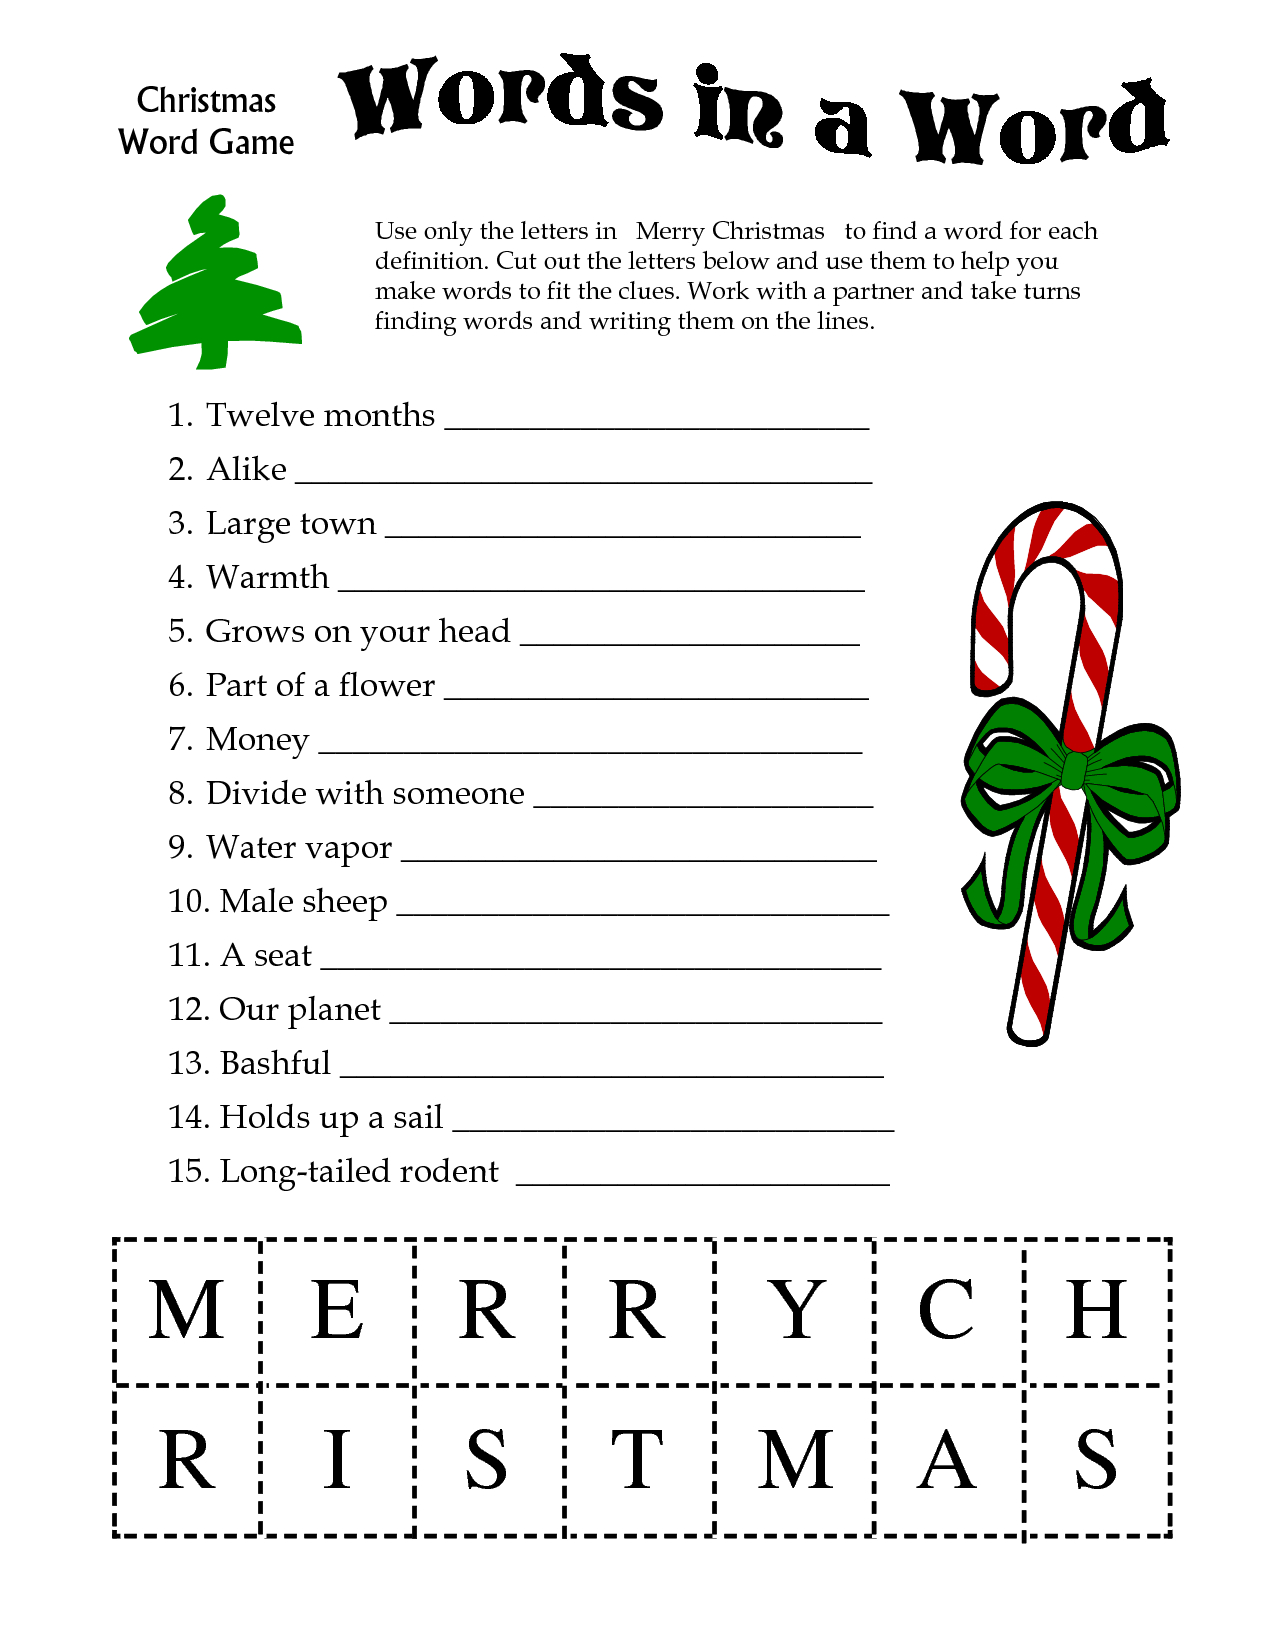 5 Images Of Free Printable Christmas Word Games | Printablee - Free Printable Word Games